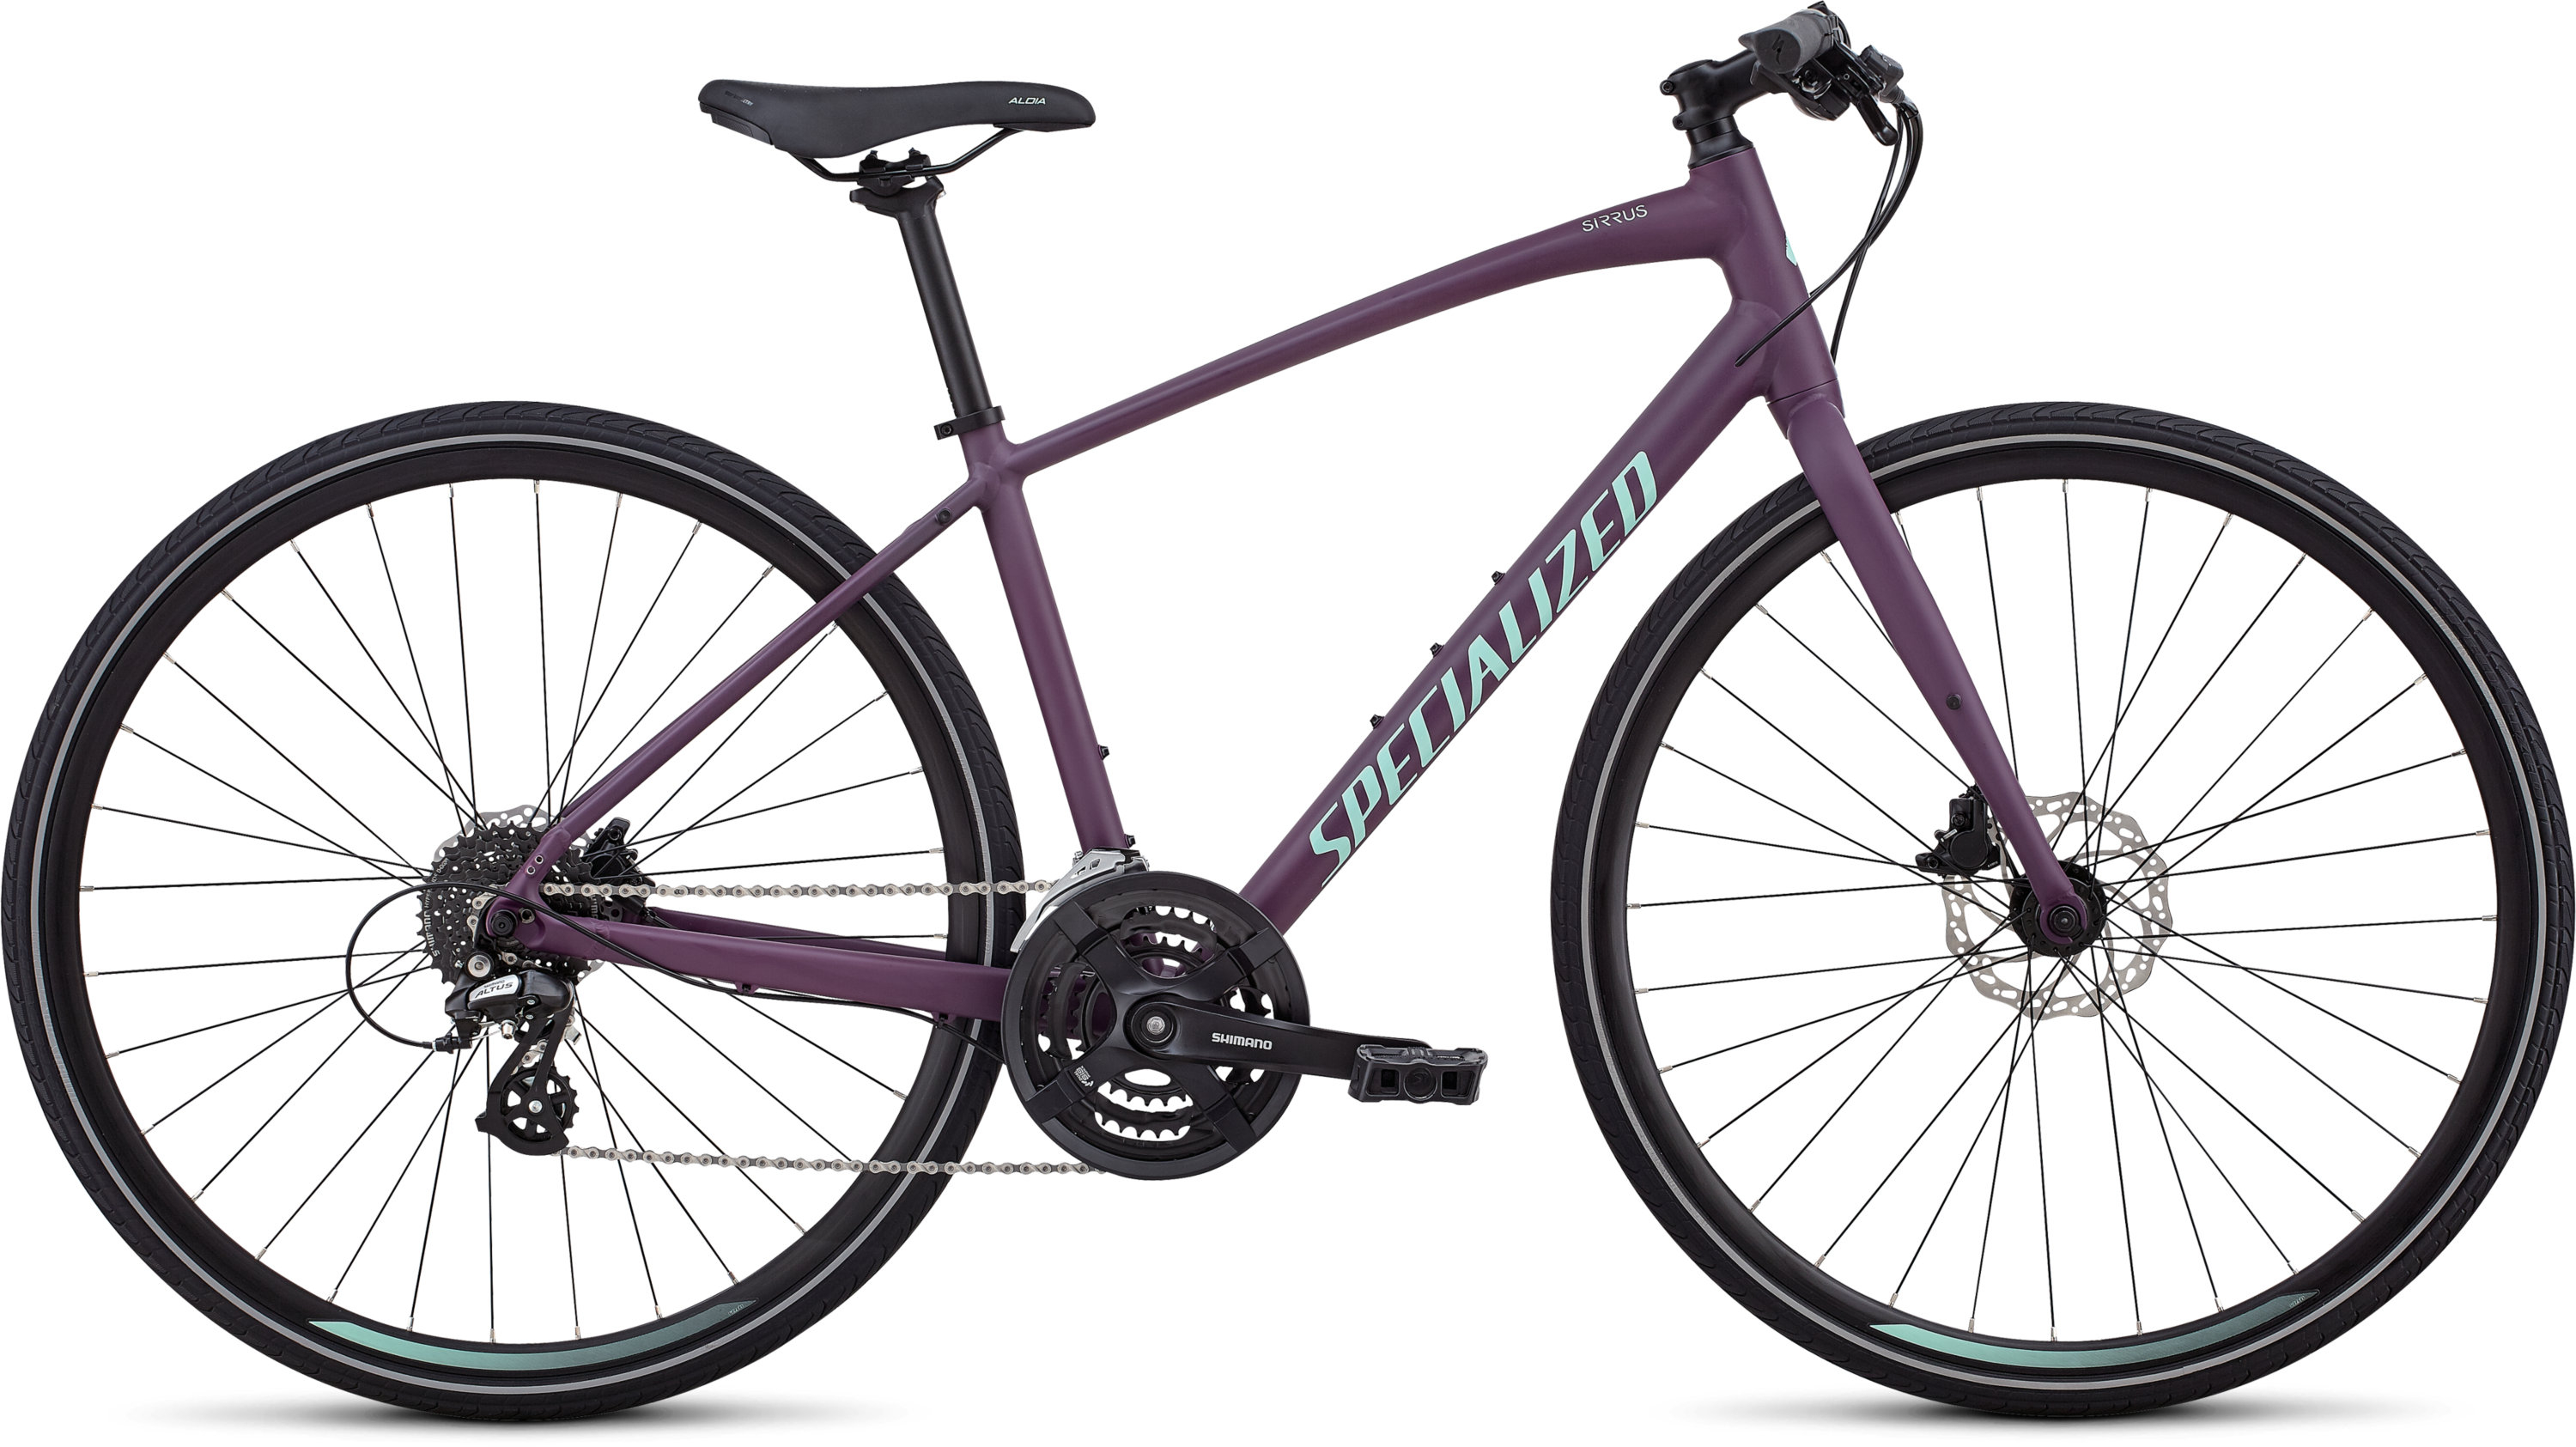 cb63c1501a8 2018 Specialized Women's Sirrus Disc - Specialized Concept Store